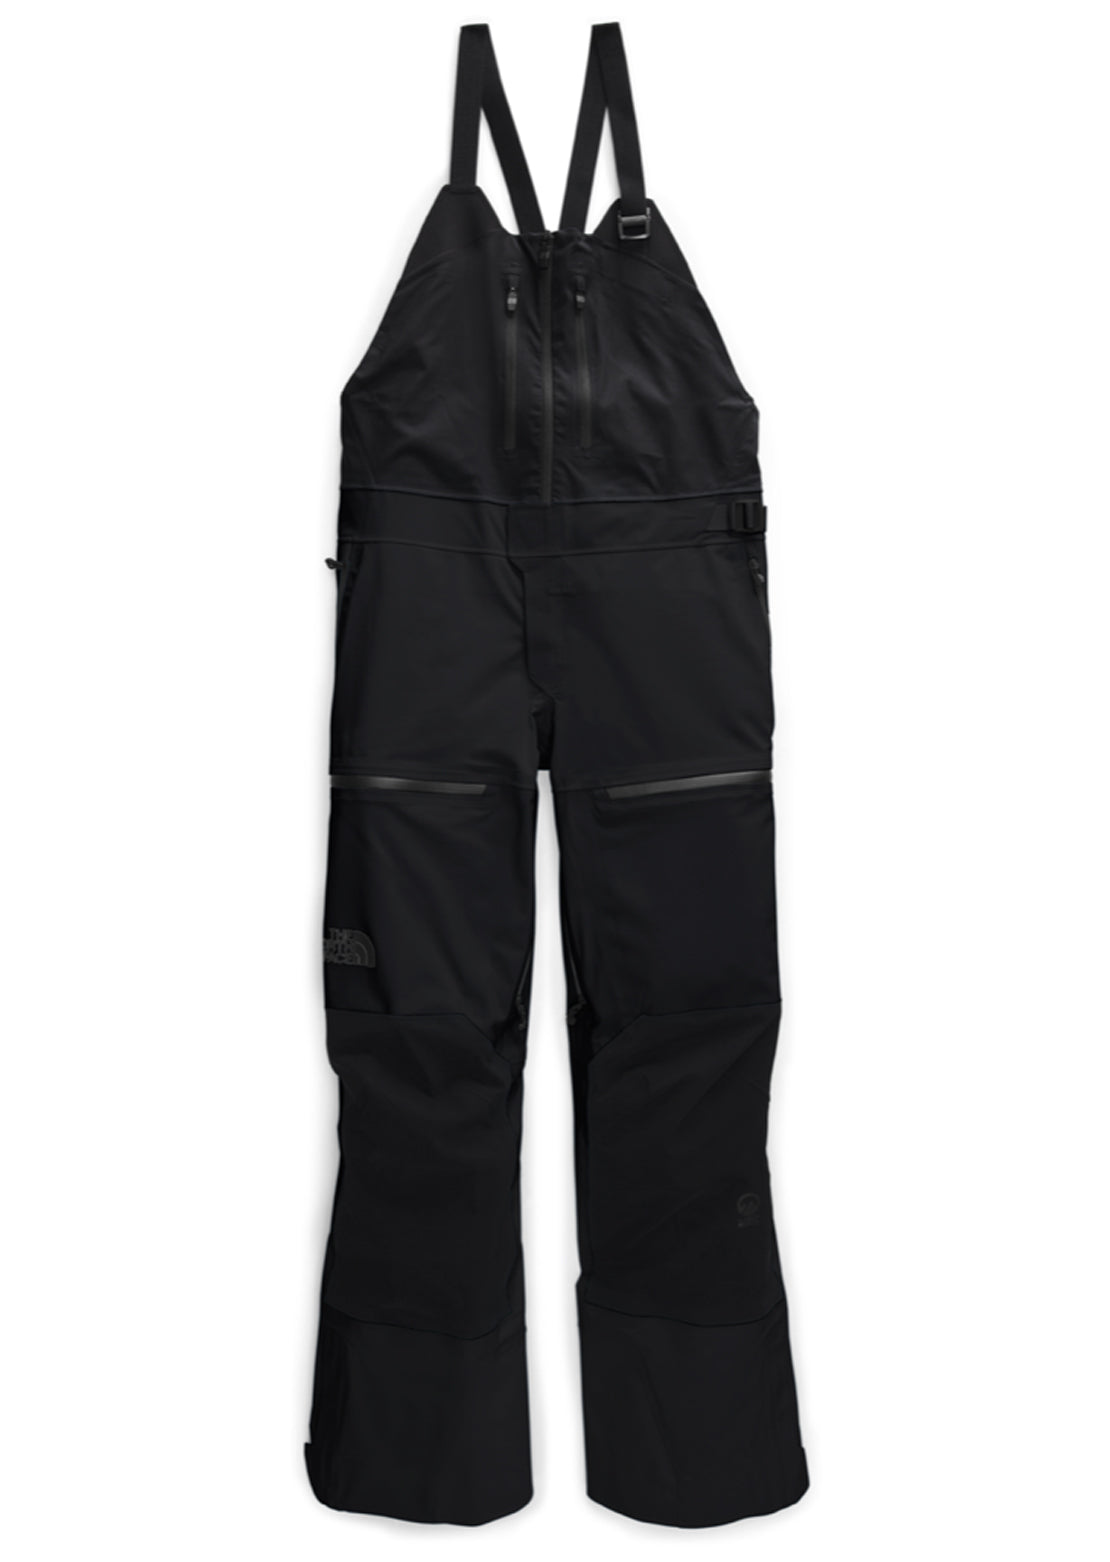 The North Face Women's A-CAD FutureLight Bib Pants